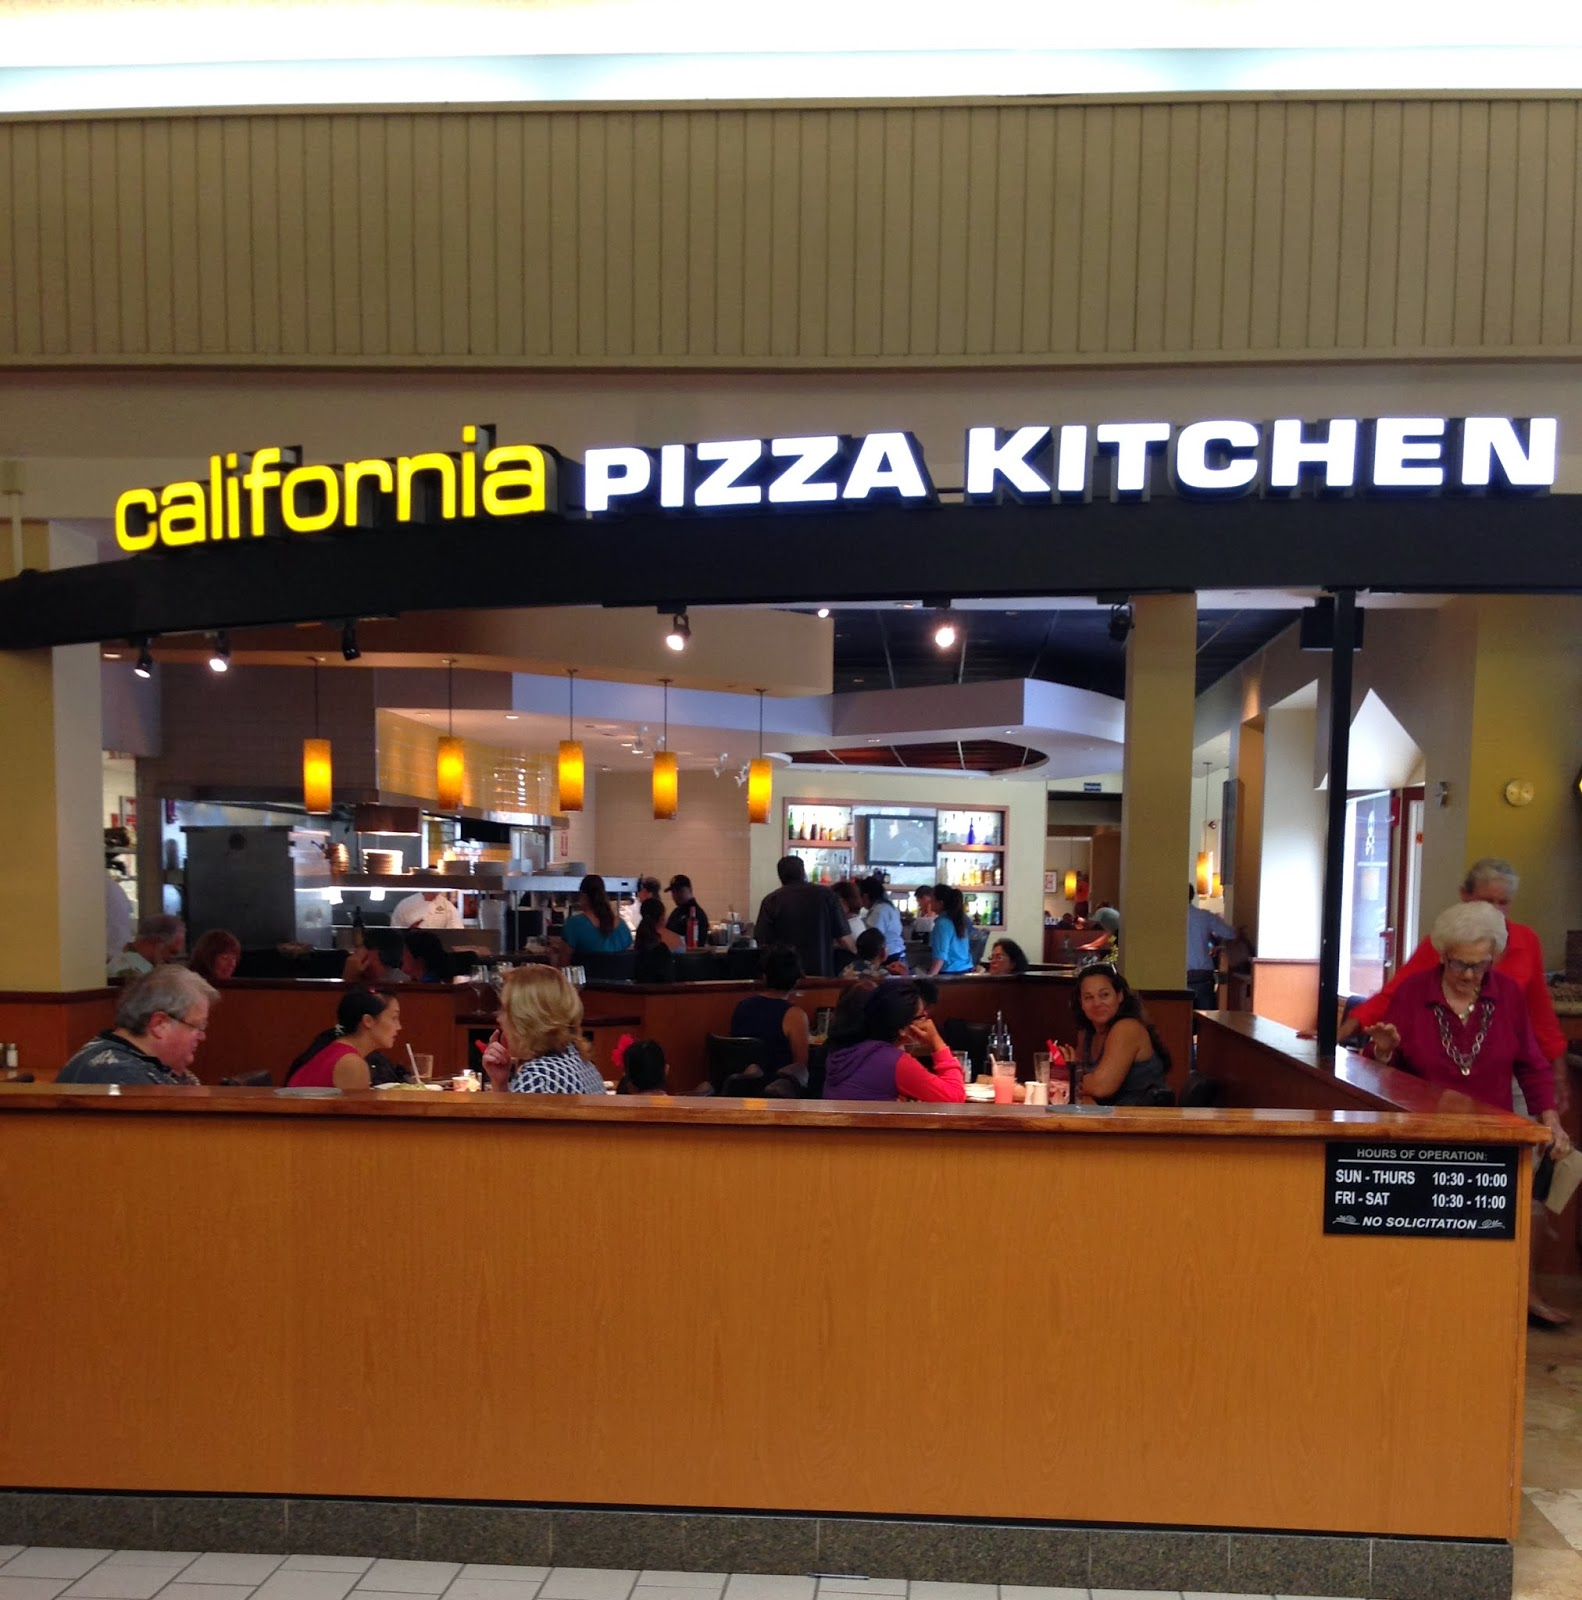 wonderful California Pizza Kitchen Hoover Al #10: CALIFORNIA PIZZA KITCHEN KAHALA MALL